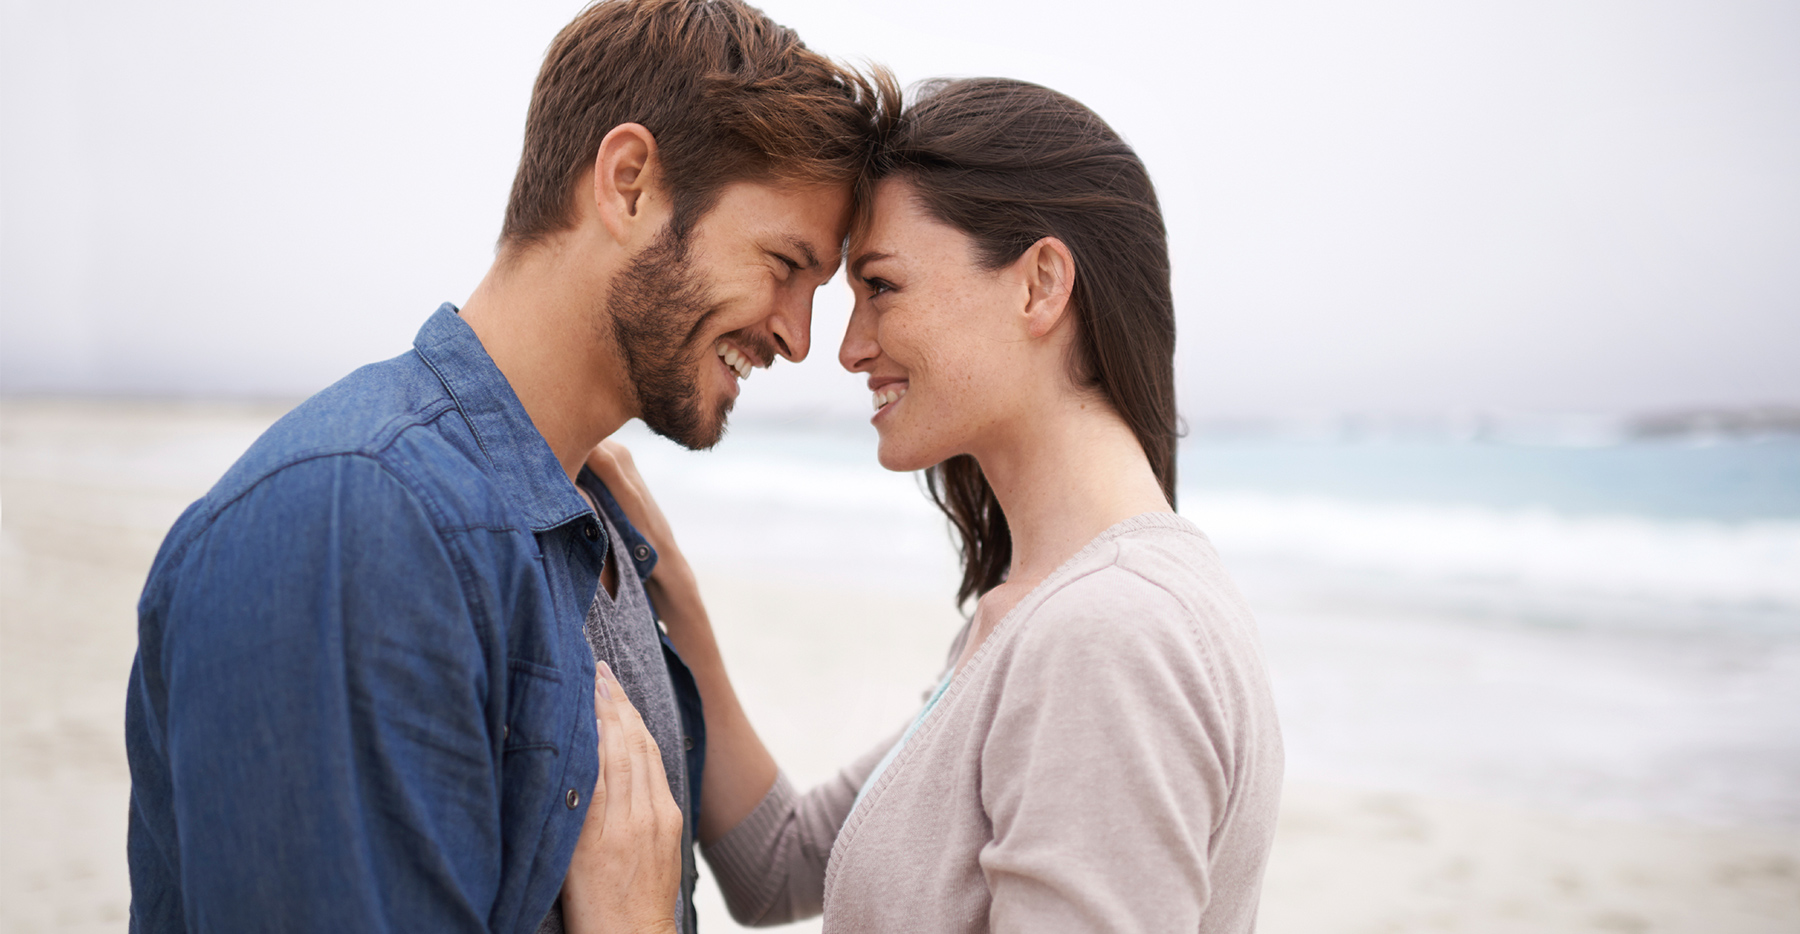 """durkee dating The short story """"memory of romance"""" by beth durkee was an interesting one when beth wins a free month to a dating club her fiancé encourages her to use it beth soon starts dating one guy regularly all with approval from her fiancé eventually she falls in love with both and has to choose one."""